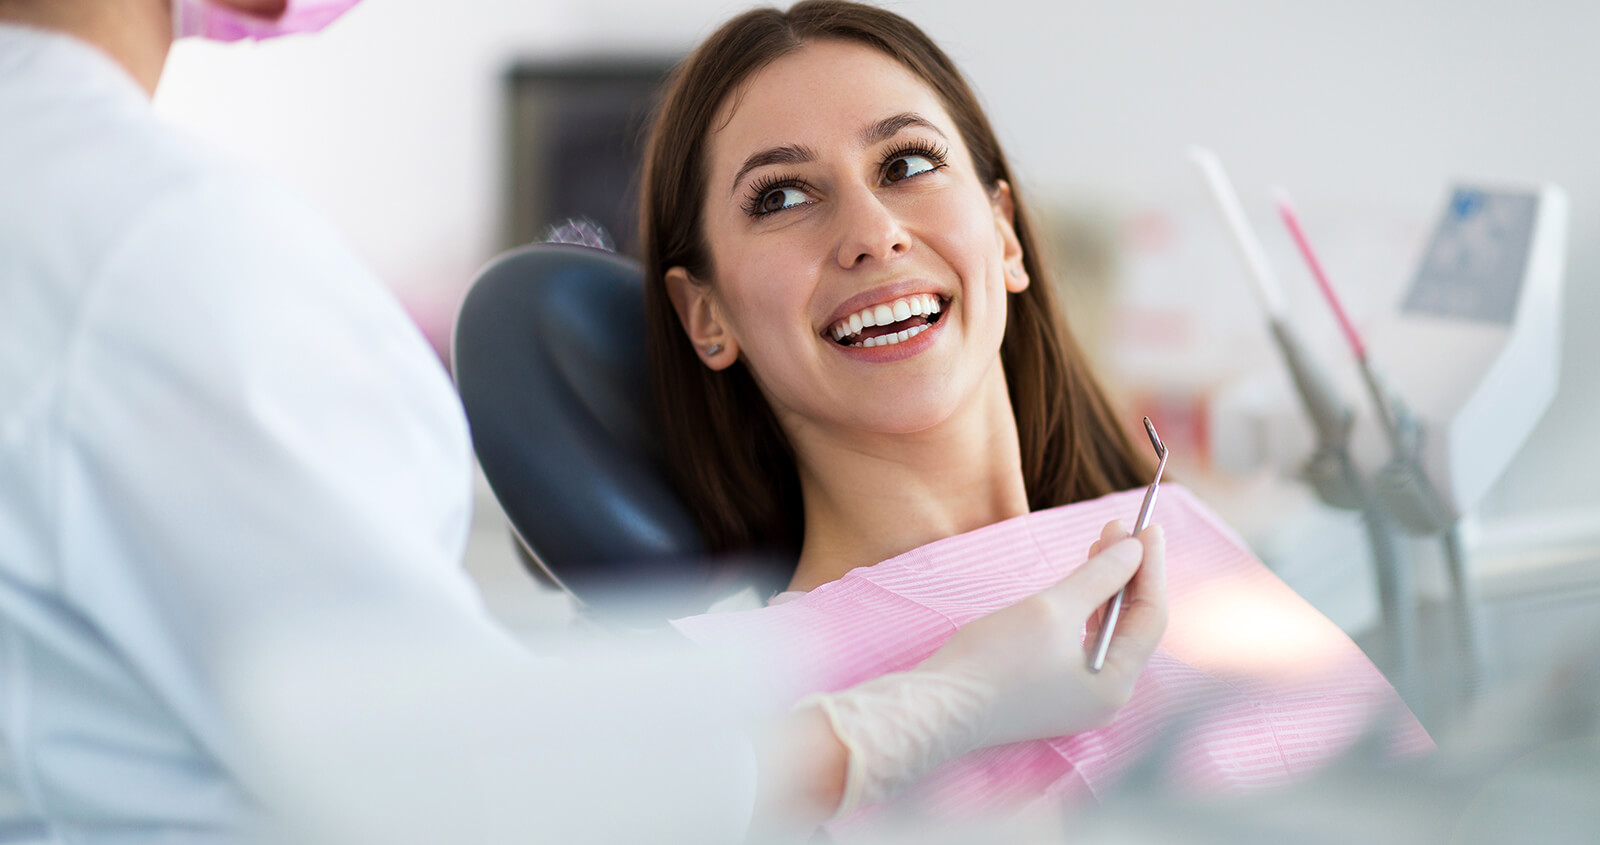 Cosmetic Dental Care at Dentistry by Shane Nelson DDS in Overland Park Area